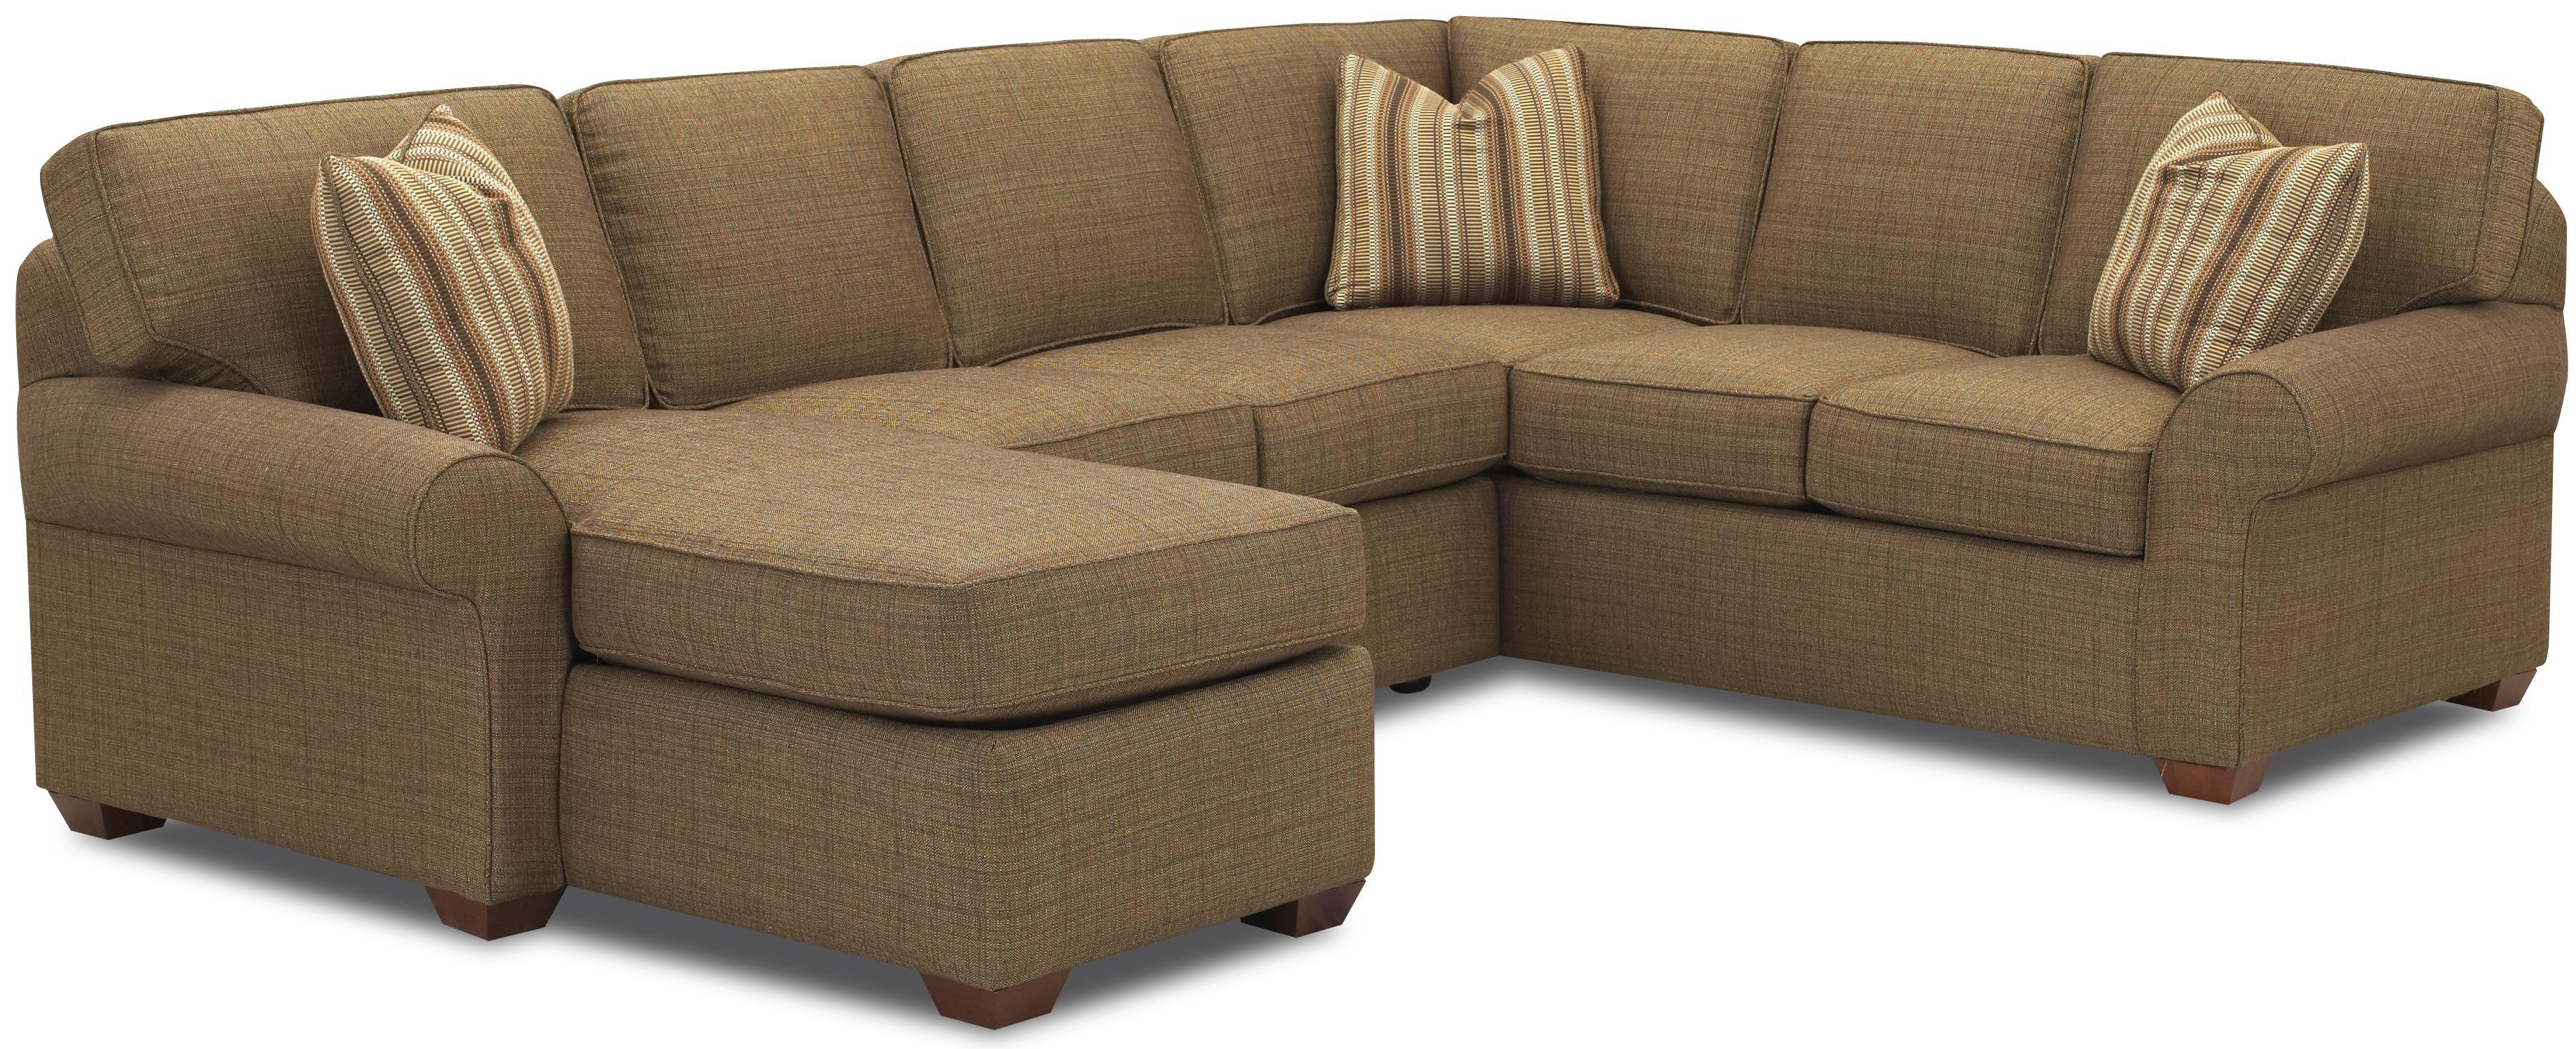 Sectional sofa group with left chaise lounge by klaussner for Alexander sectional sofa chaise